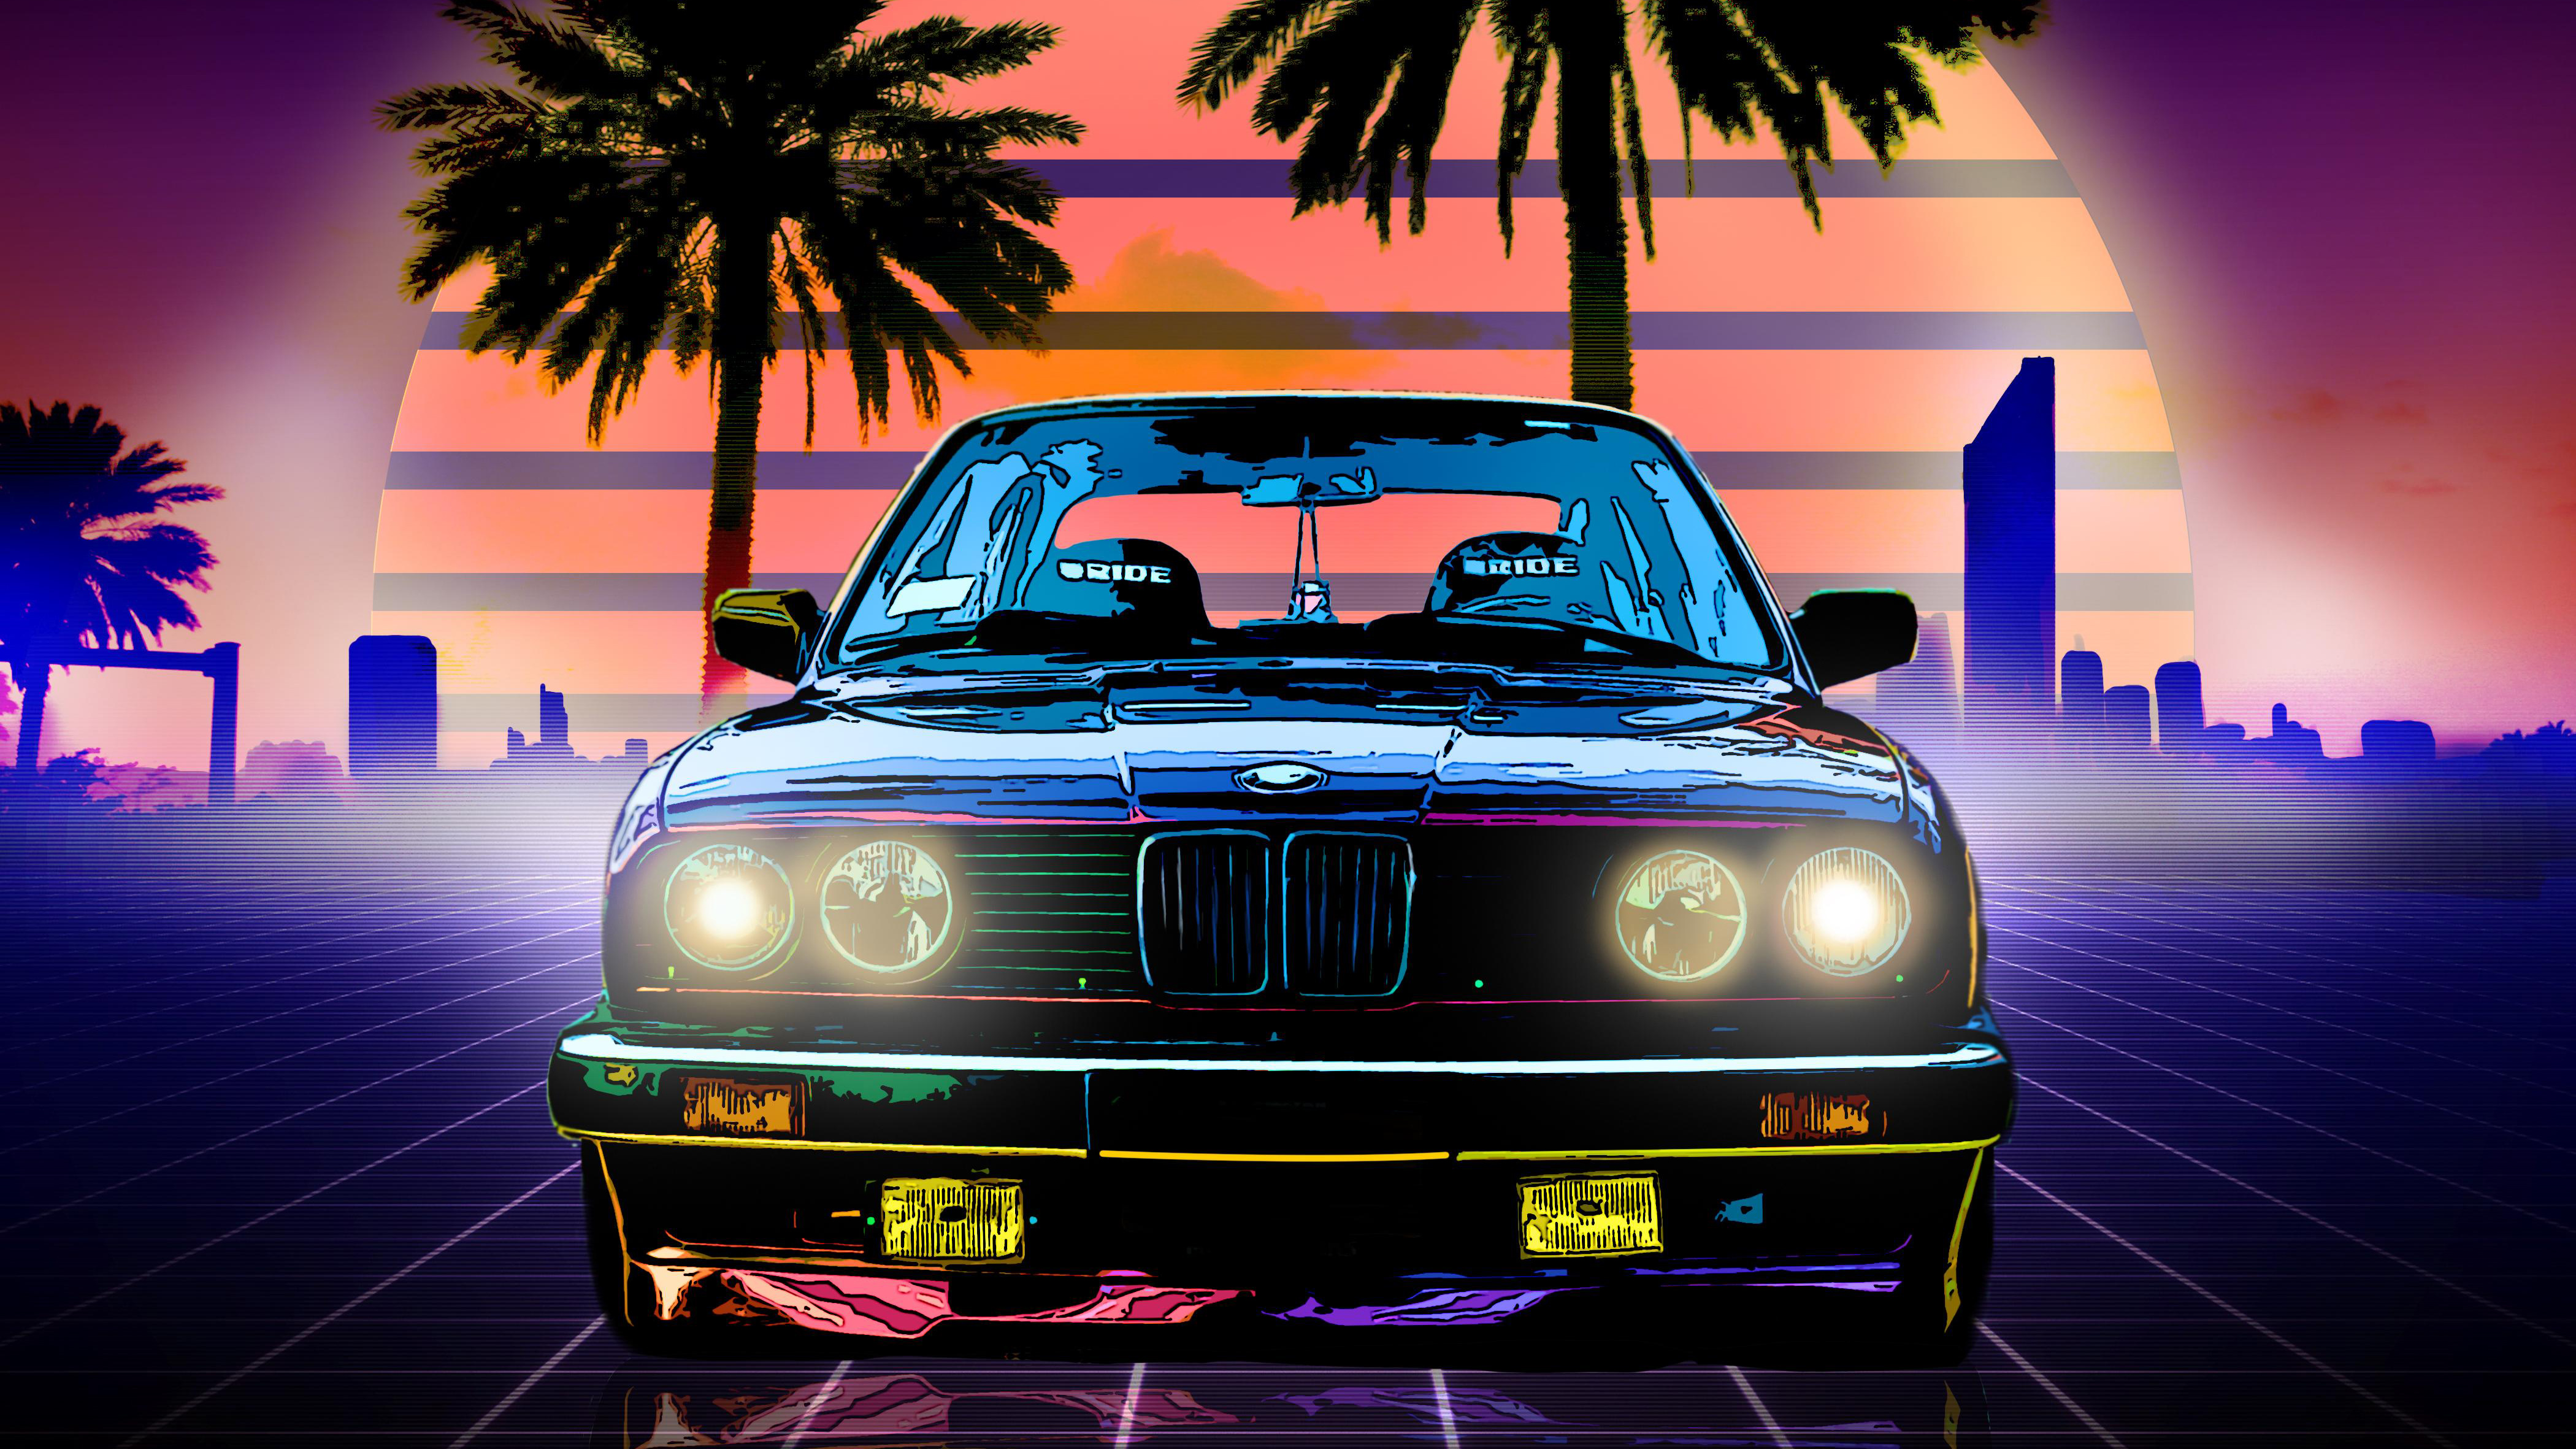 Bmw E30 Digital Art 4k Hd Artist 4k Wallpapers Images Backgrounds Photos And Pictures